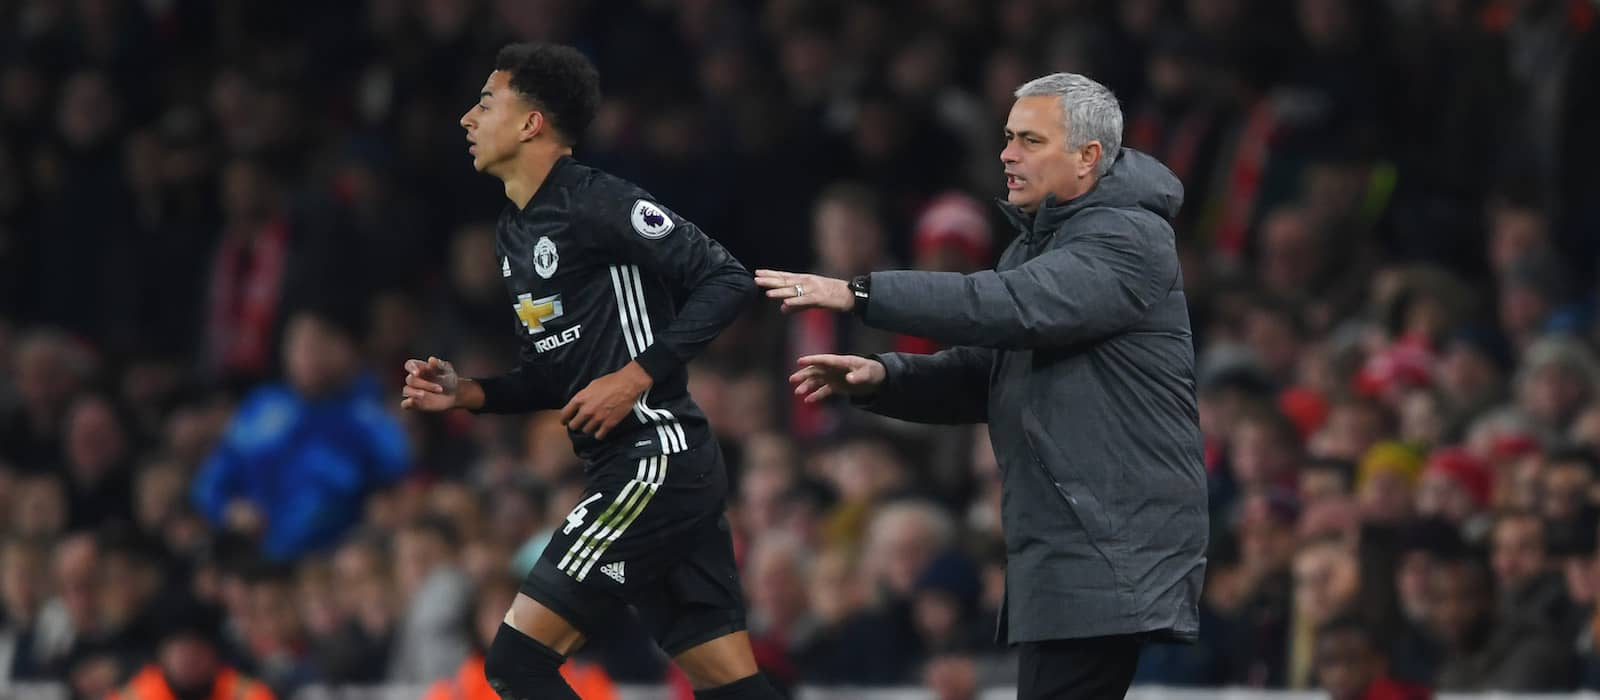 Jesse Lingard set for bumper new deal at Manchester United: report